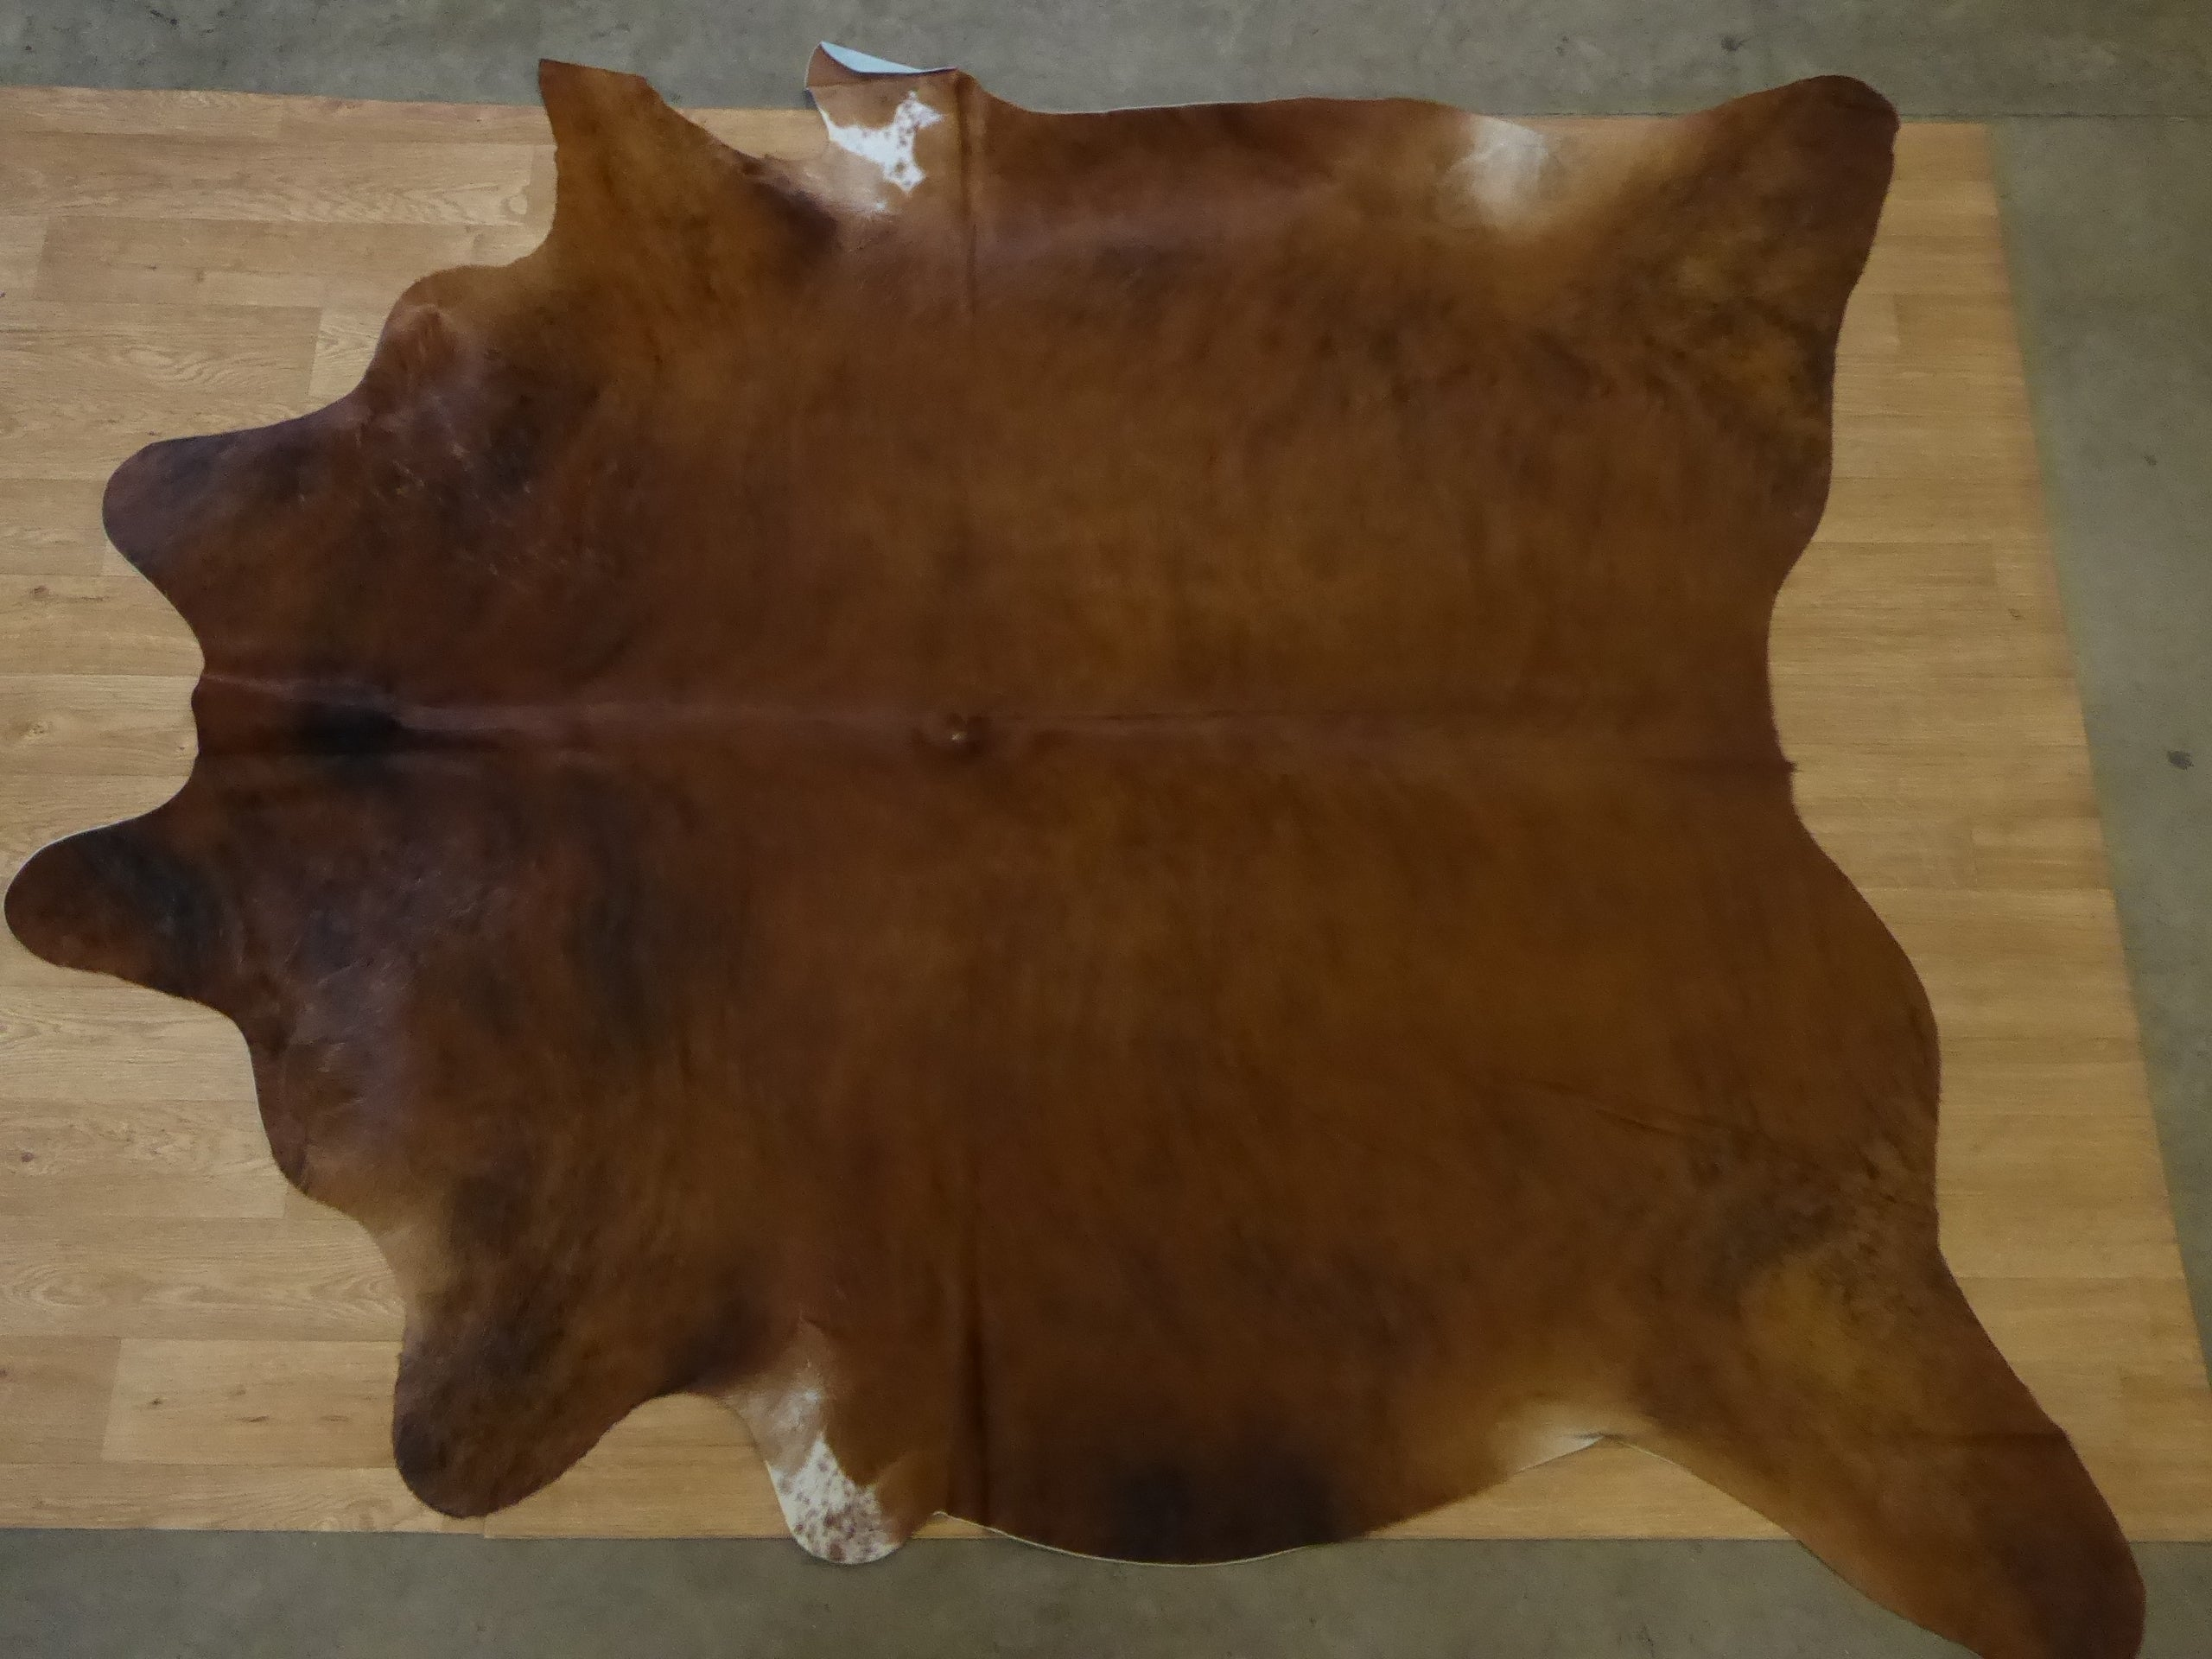 Natural Hair On Cow Hide : This Hide Is Perfect For Wall Hanging, Leather Rugs, Leather Bags & Leather Accessories (pic code 1010992)